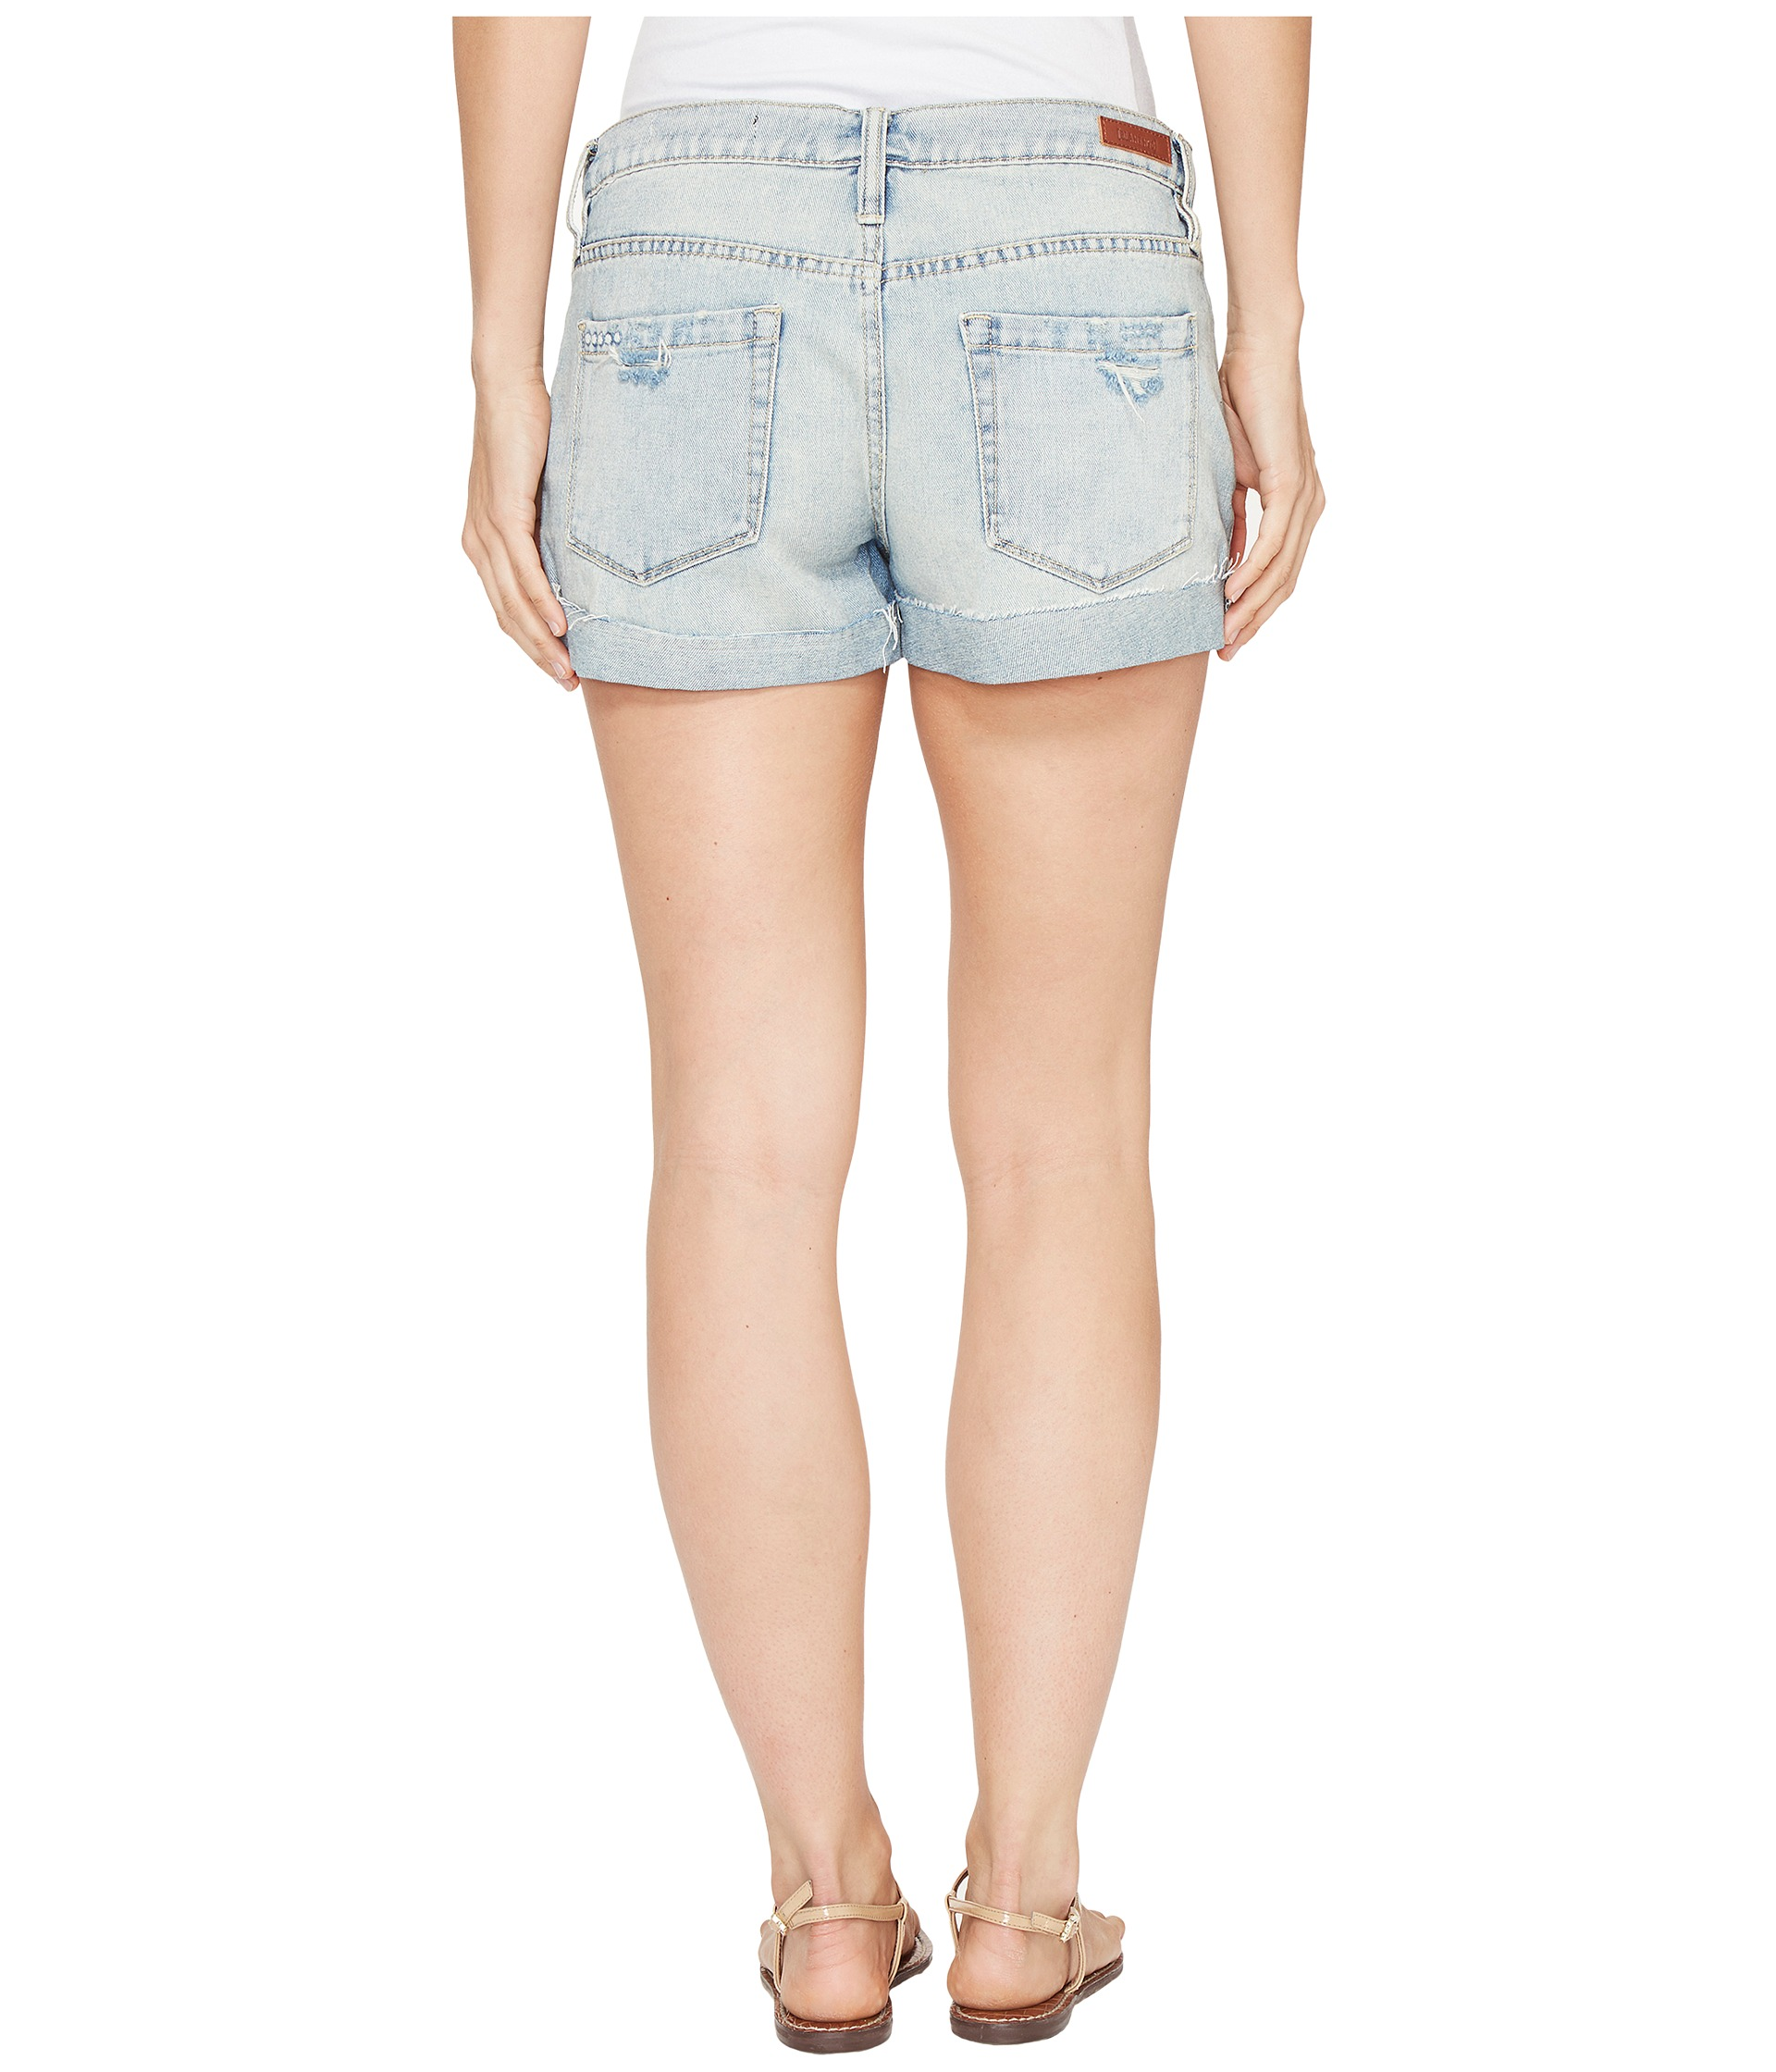 how to make denim shorts longer